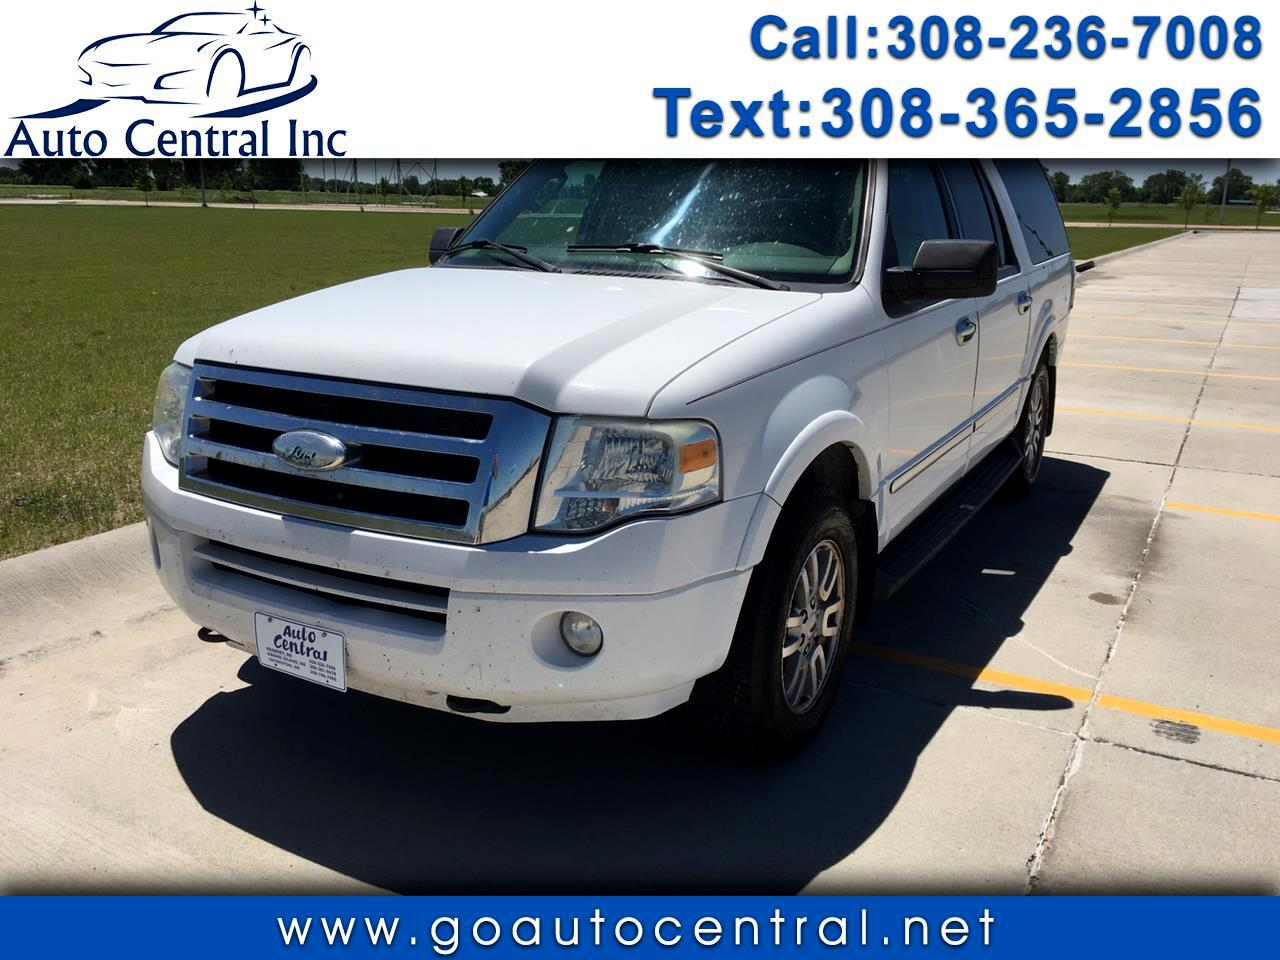 2009 Ford Expedition EL EL XLT 4WD